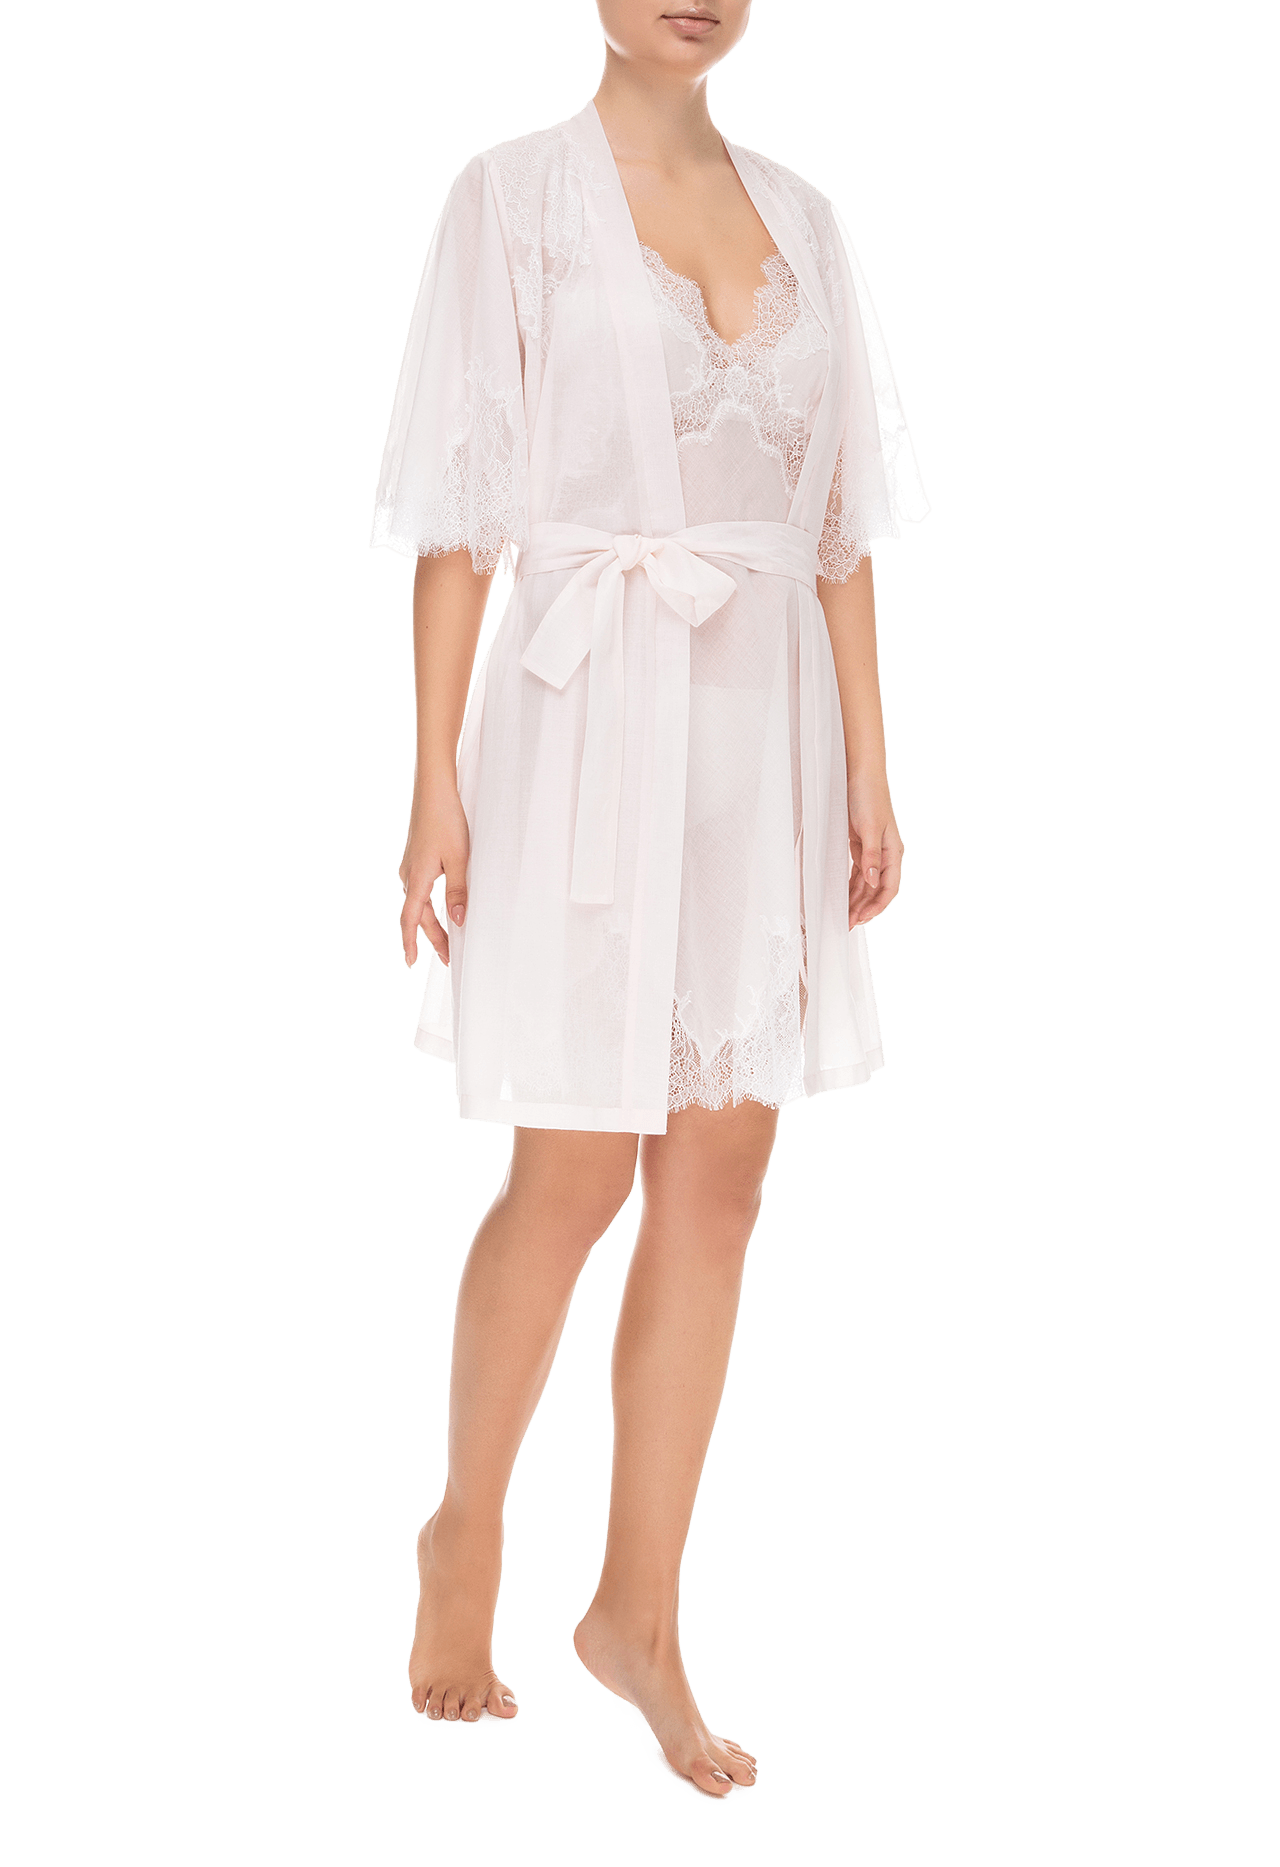 Халат Suavite lace-short-robe-slp85-19-p-virgin-w